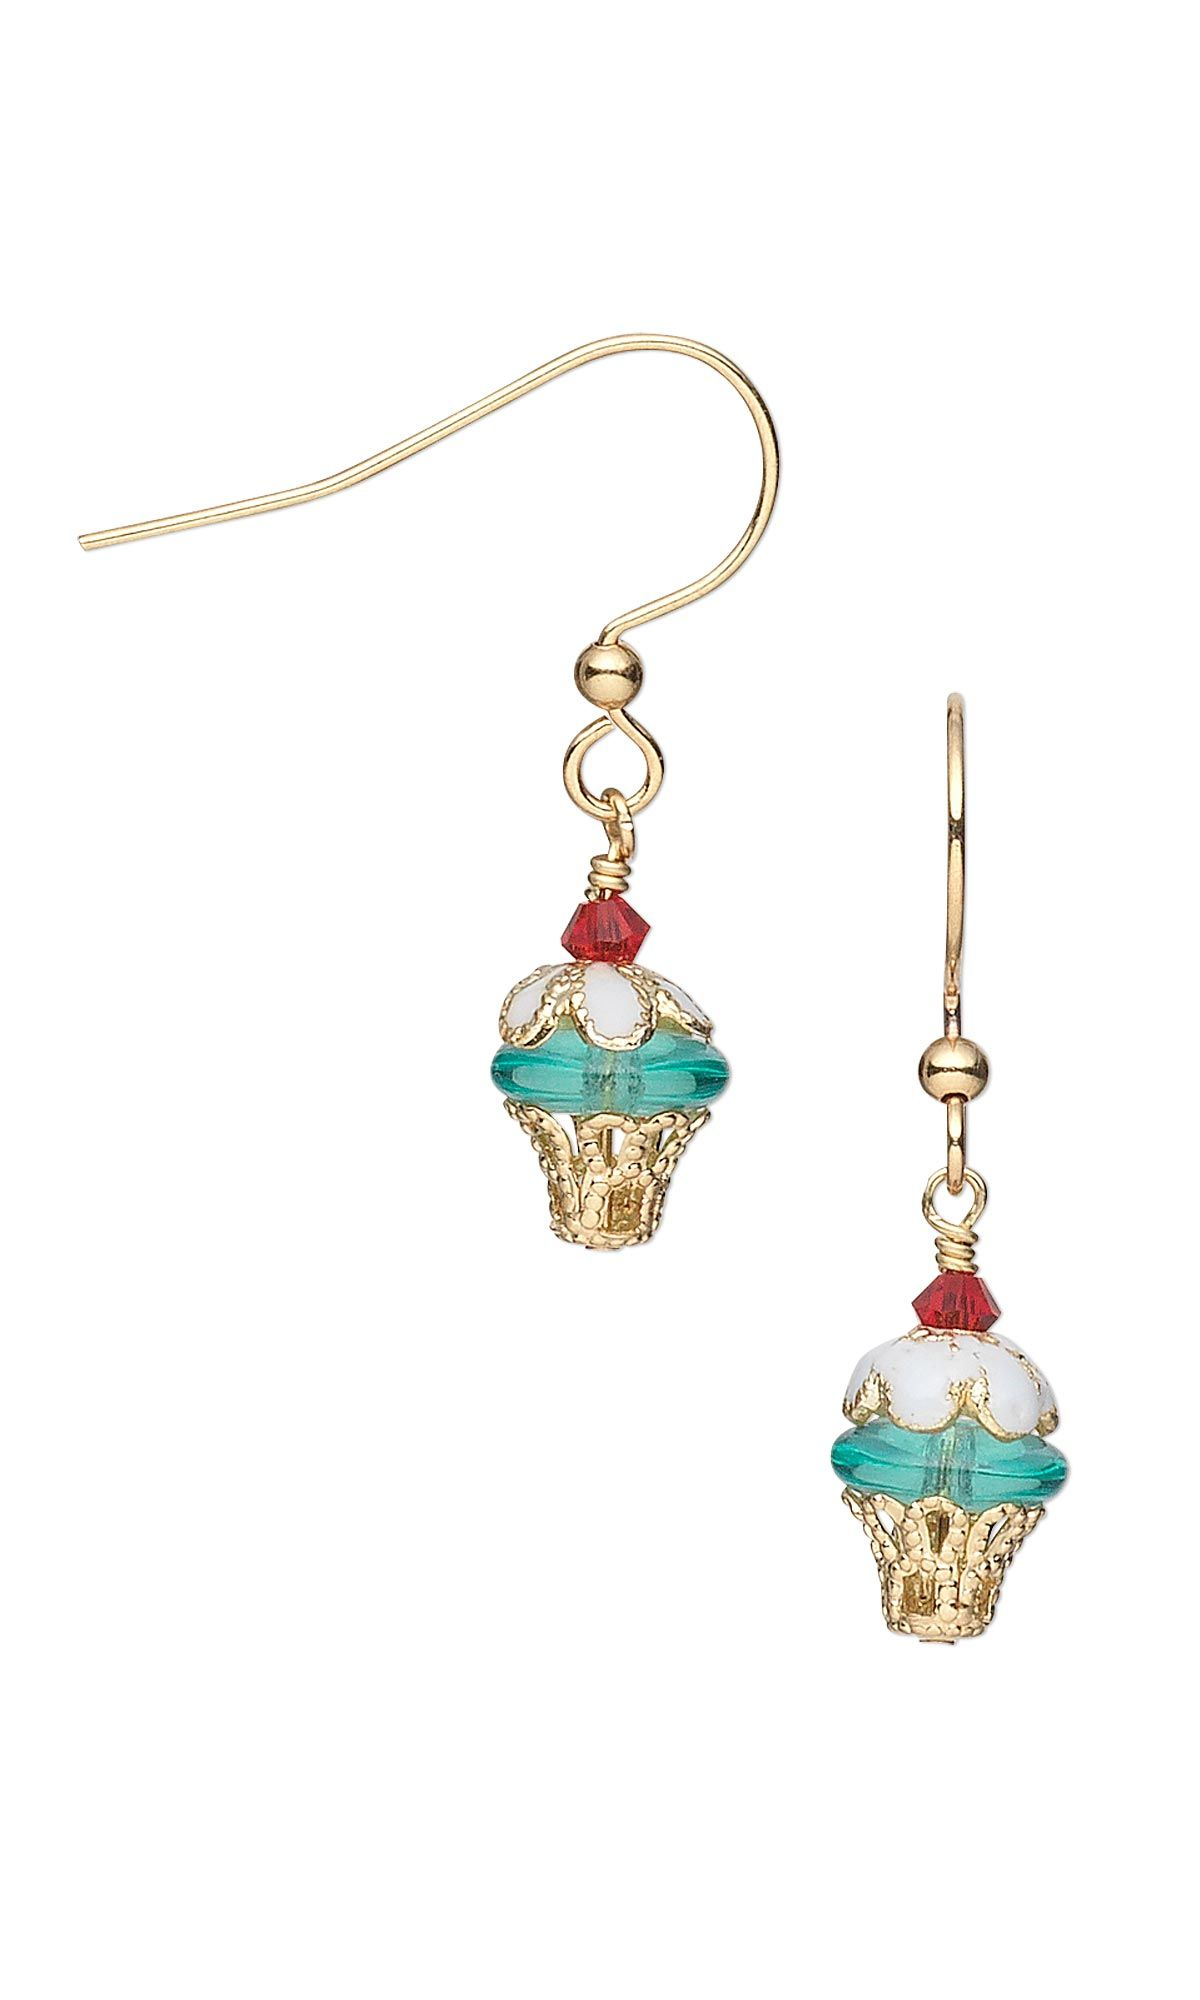 jewelry design cupcake earrings with czech pressed glass beads